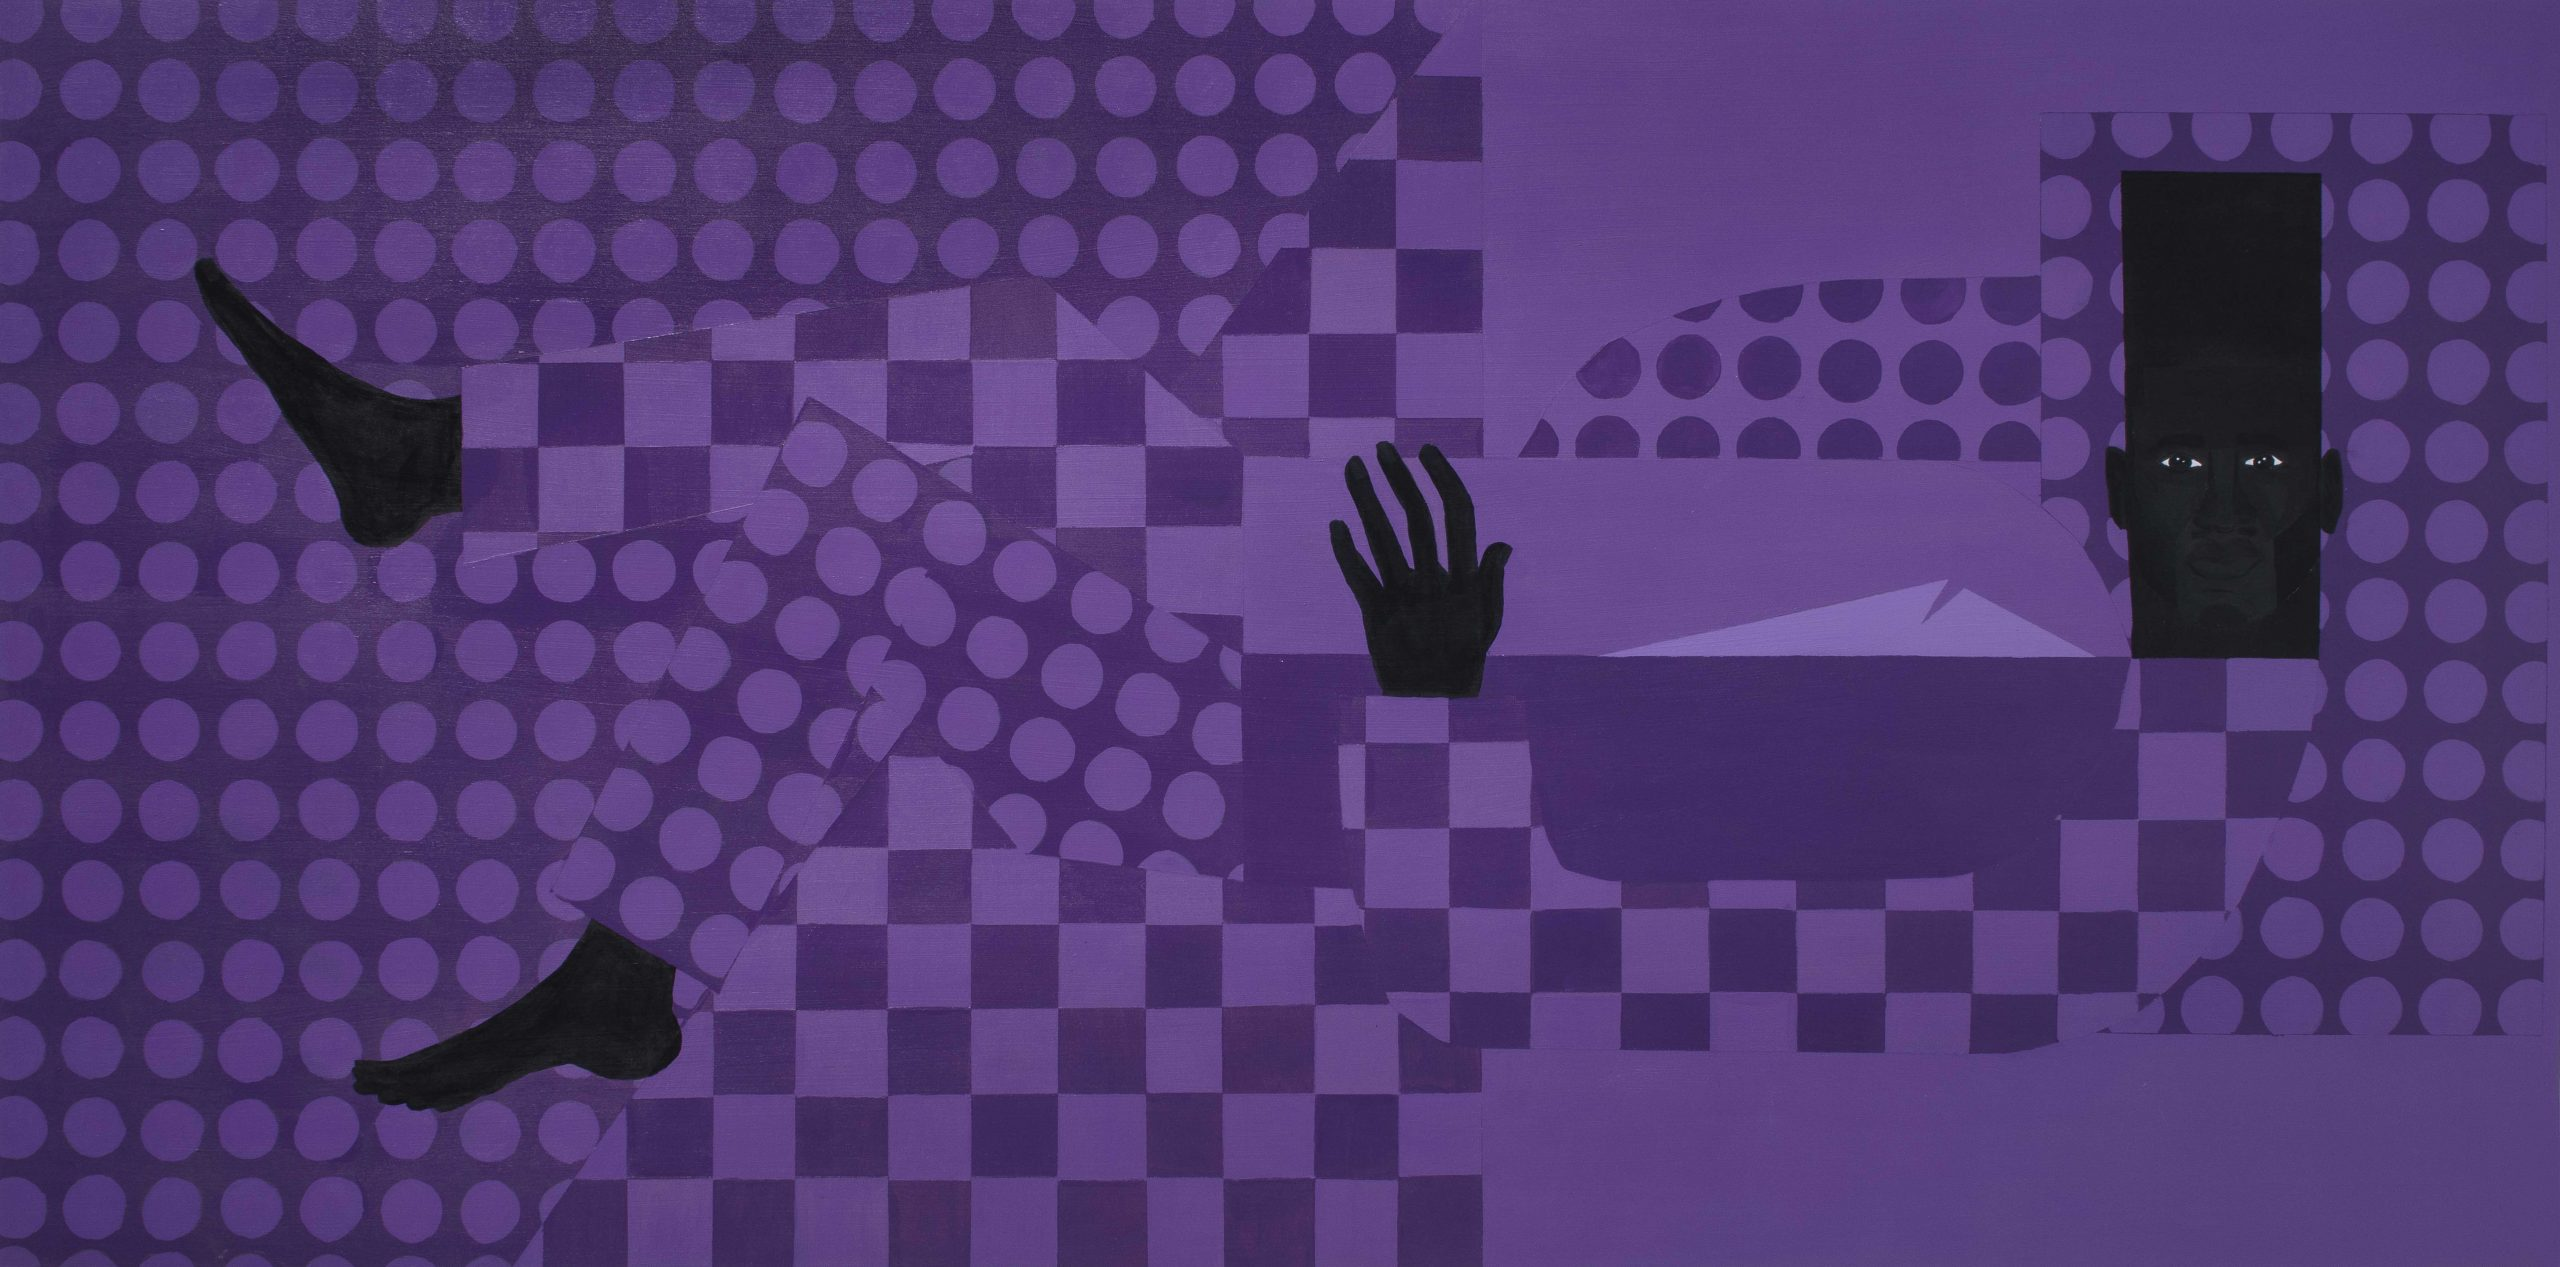 Jon Key. <em>The Man in the Violet Suit No. 14 (Violet Bedroom)</em>, 2020. Acrylic on panel, 36 x 72 inches (91.4 x 182.9 cm)